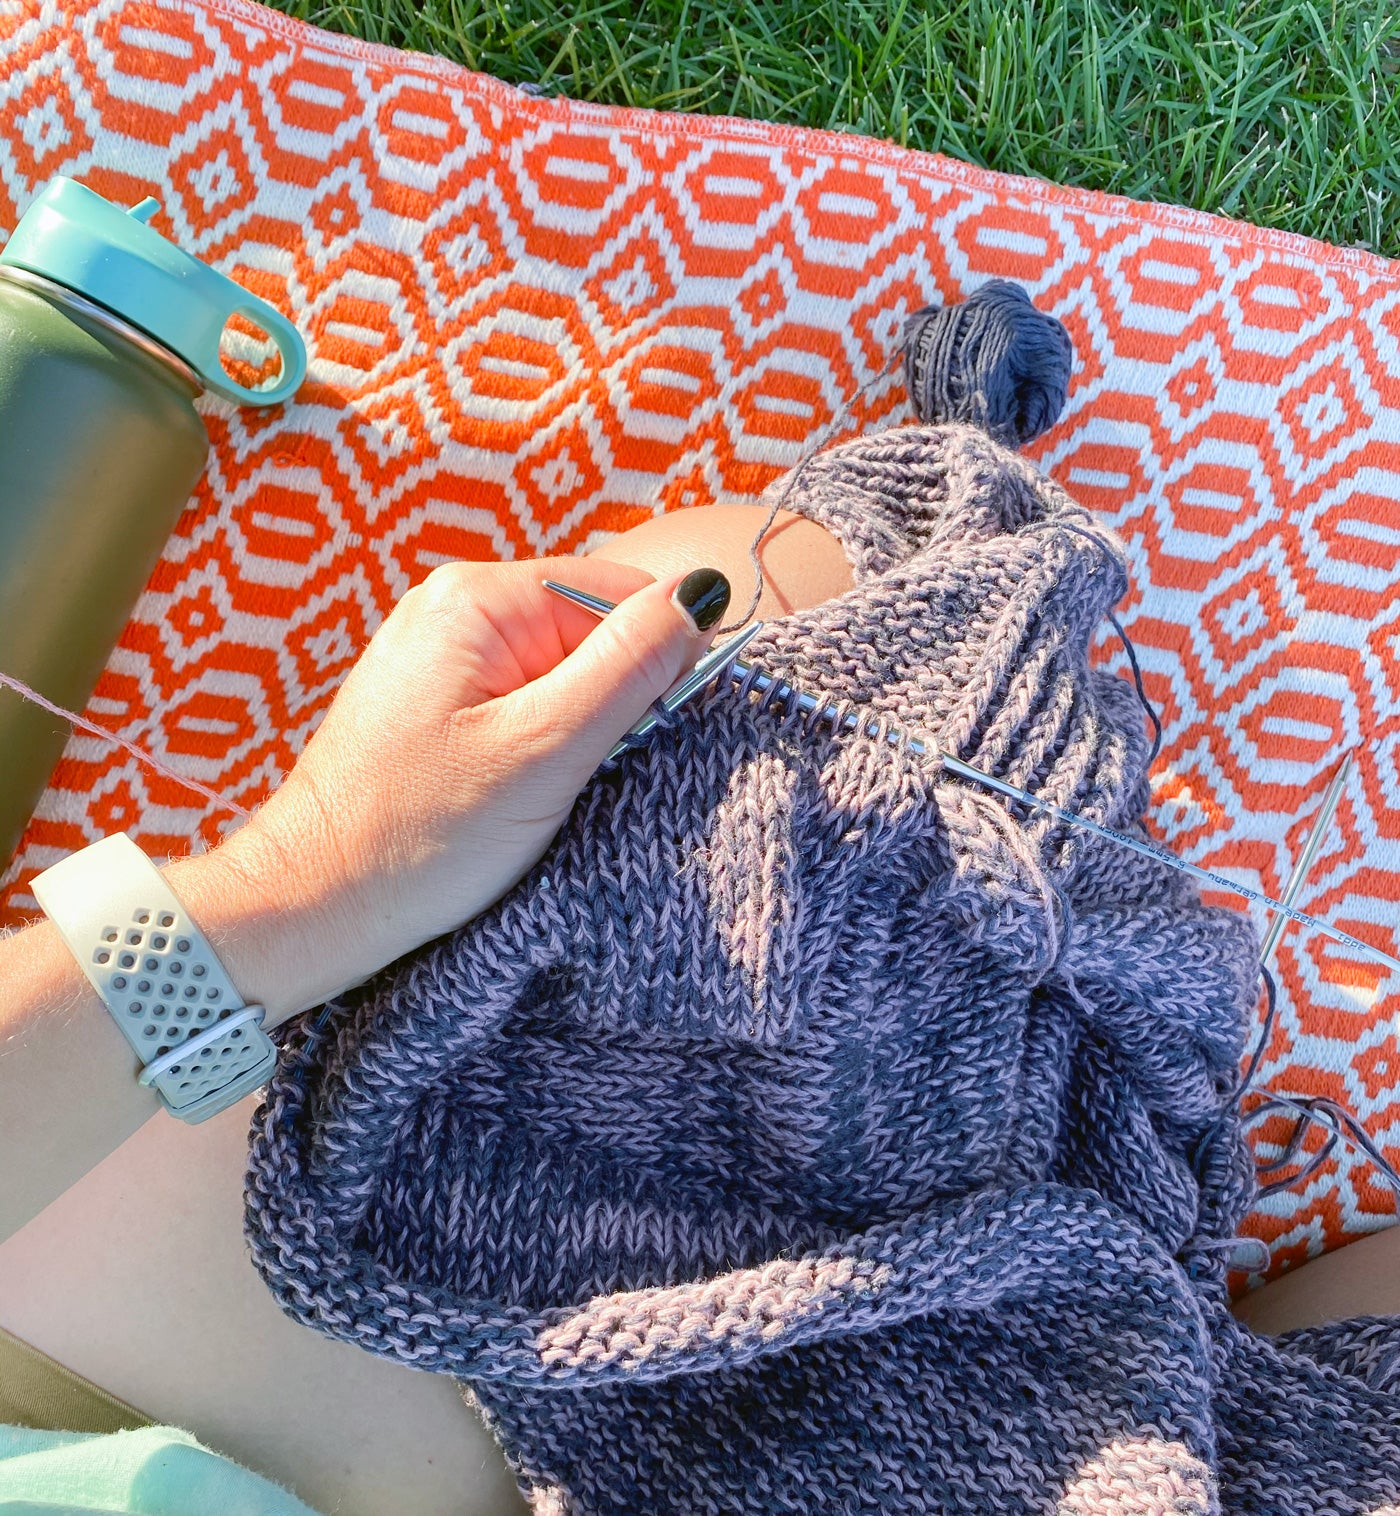 A close-up of someone's hands knitting a cotton garment, they sit crosslegged on a poppy-red and white patterned picnic blanket on lush green grass, with a green metal water bottle laying next to them.